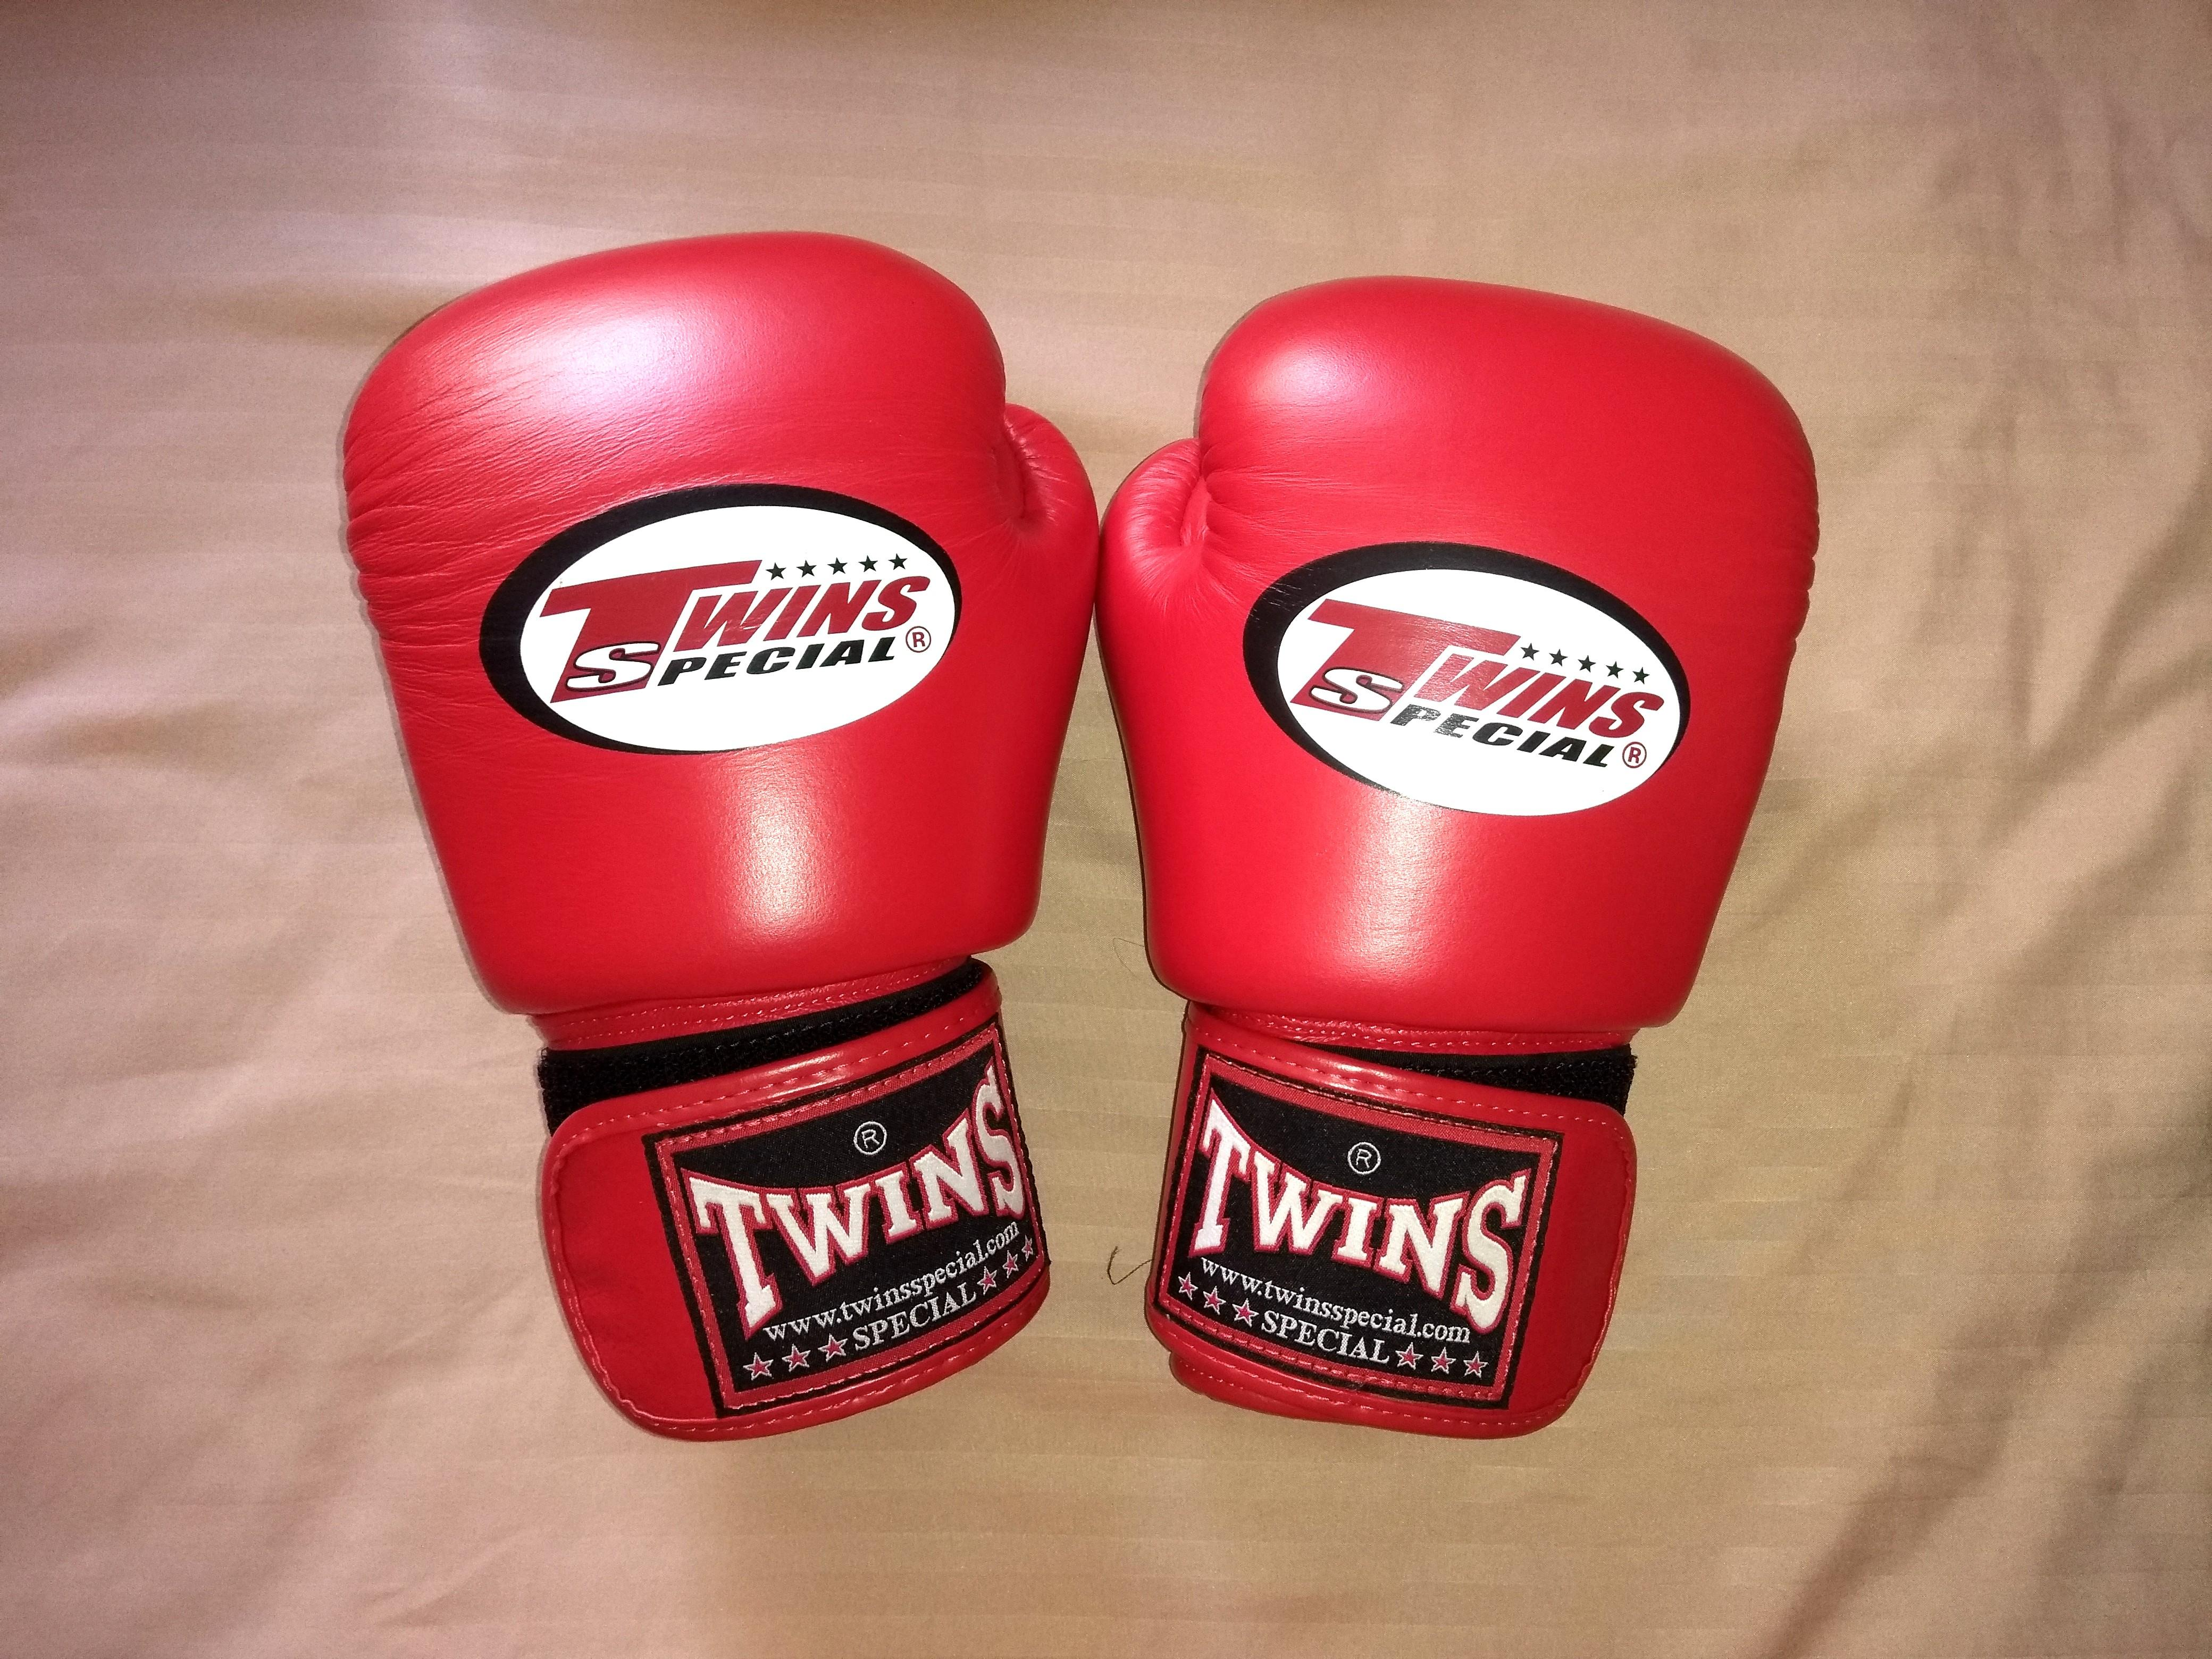 Authentic Twins Boxing / Muay Thai Gloves 10oz (Red), Sports